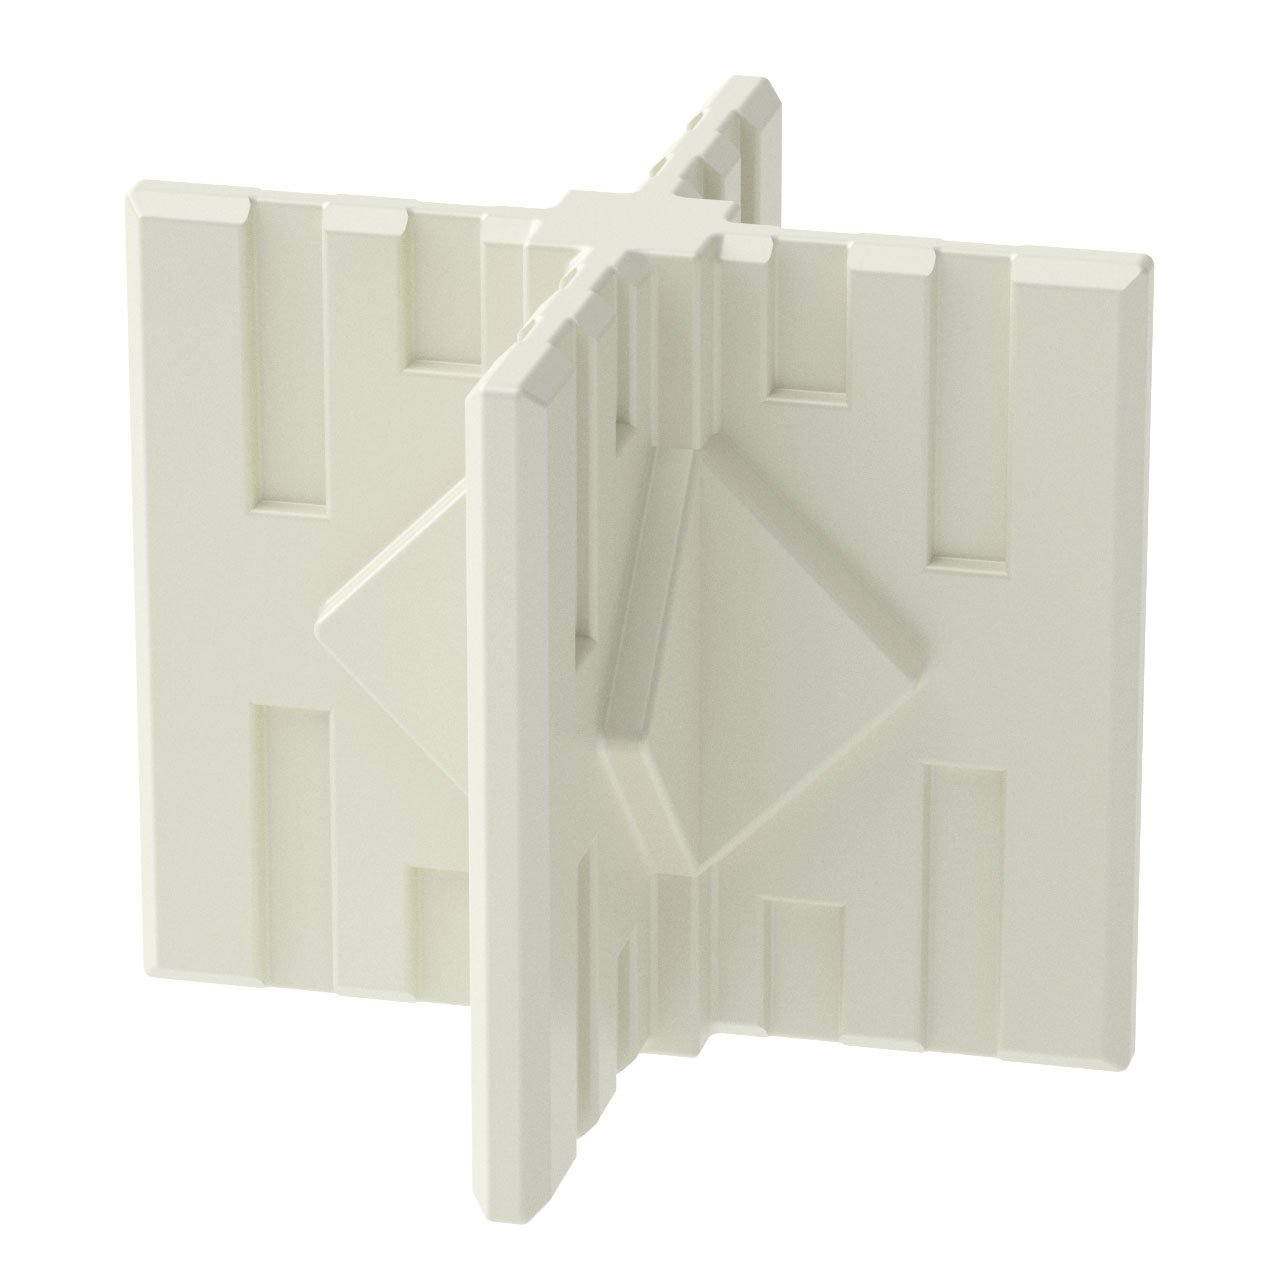 GOGO Panels - CX1W - Cream White Middle/Foot 4-Way Connector